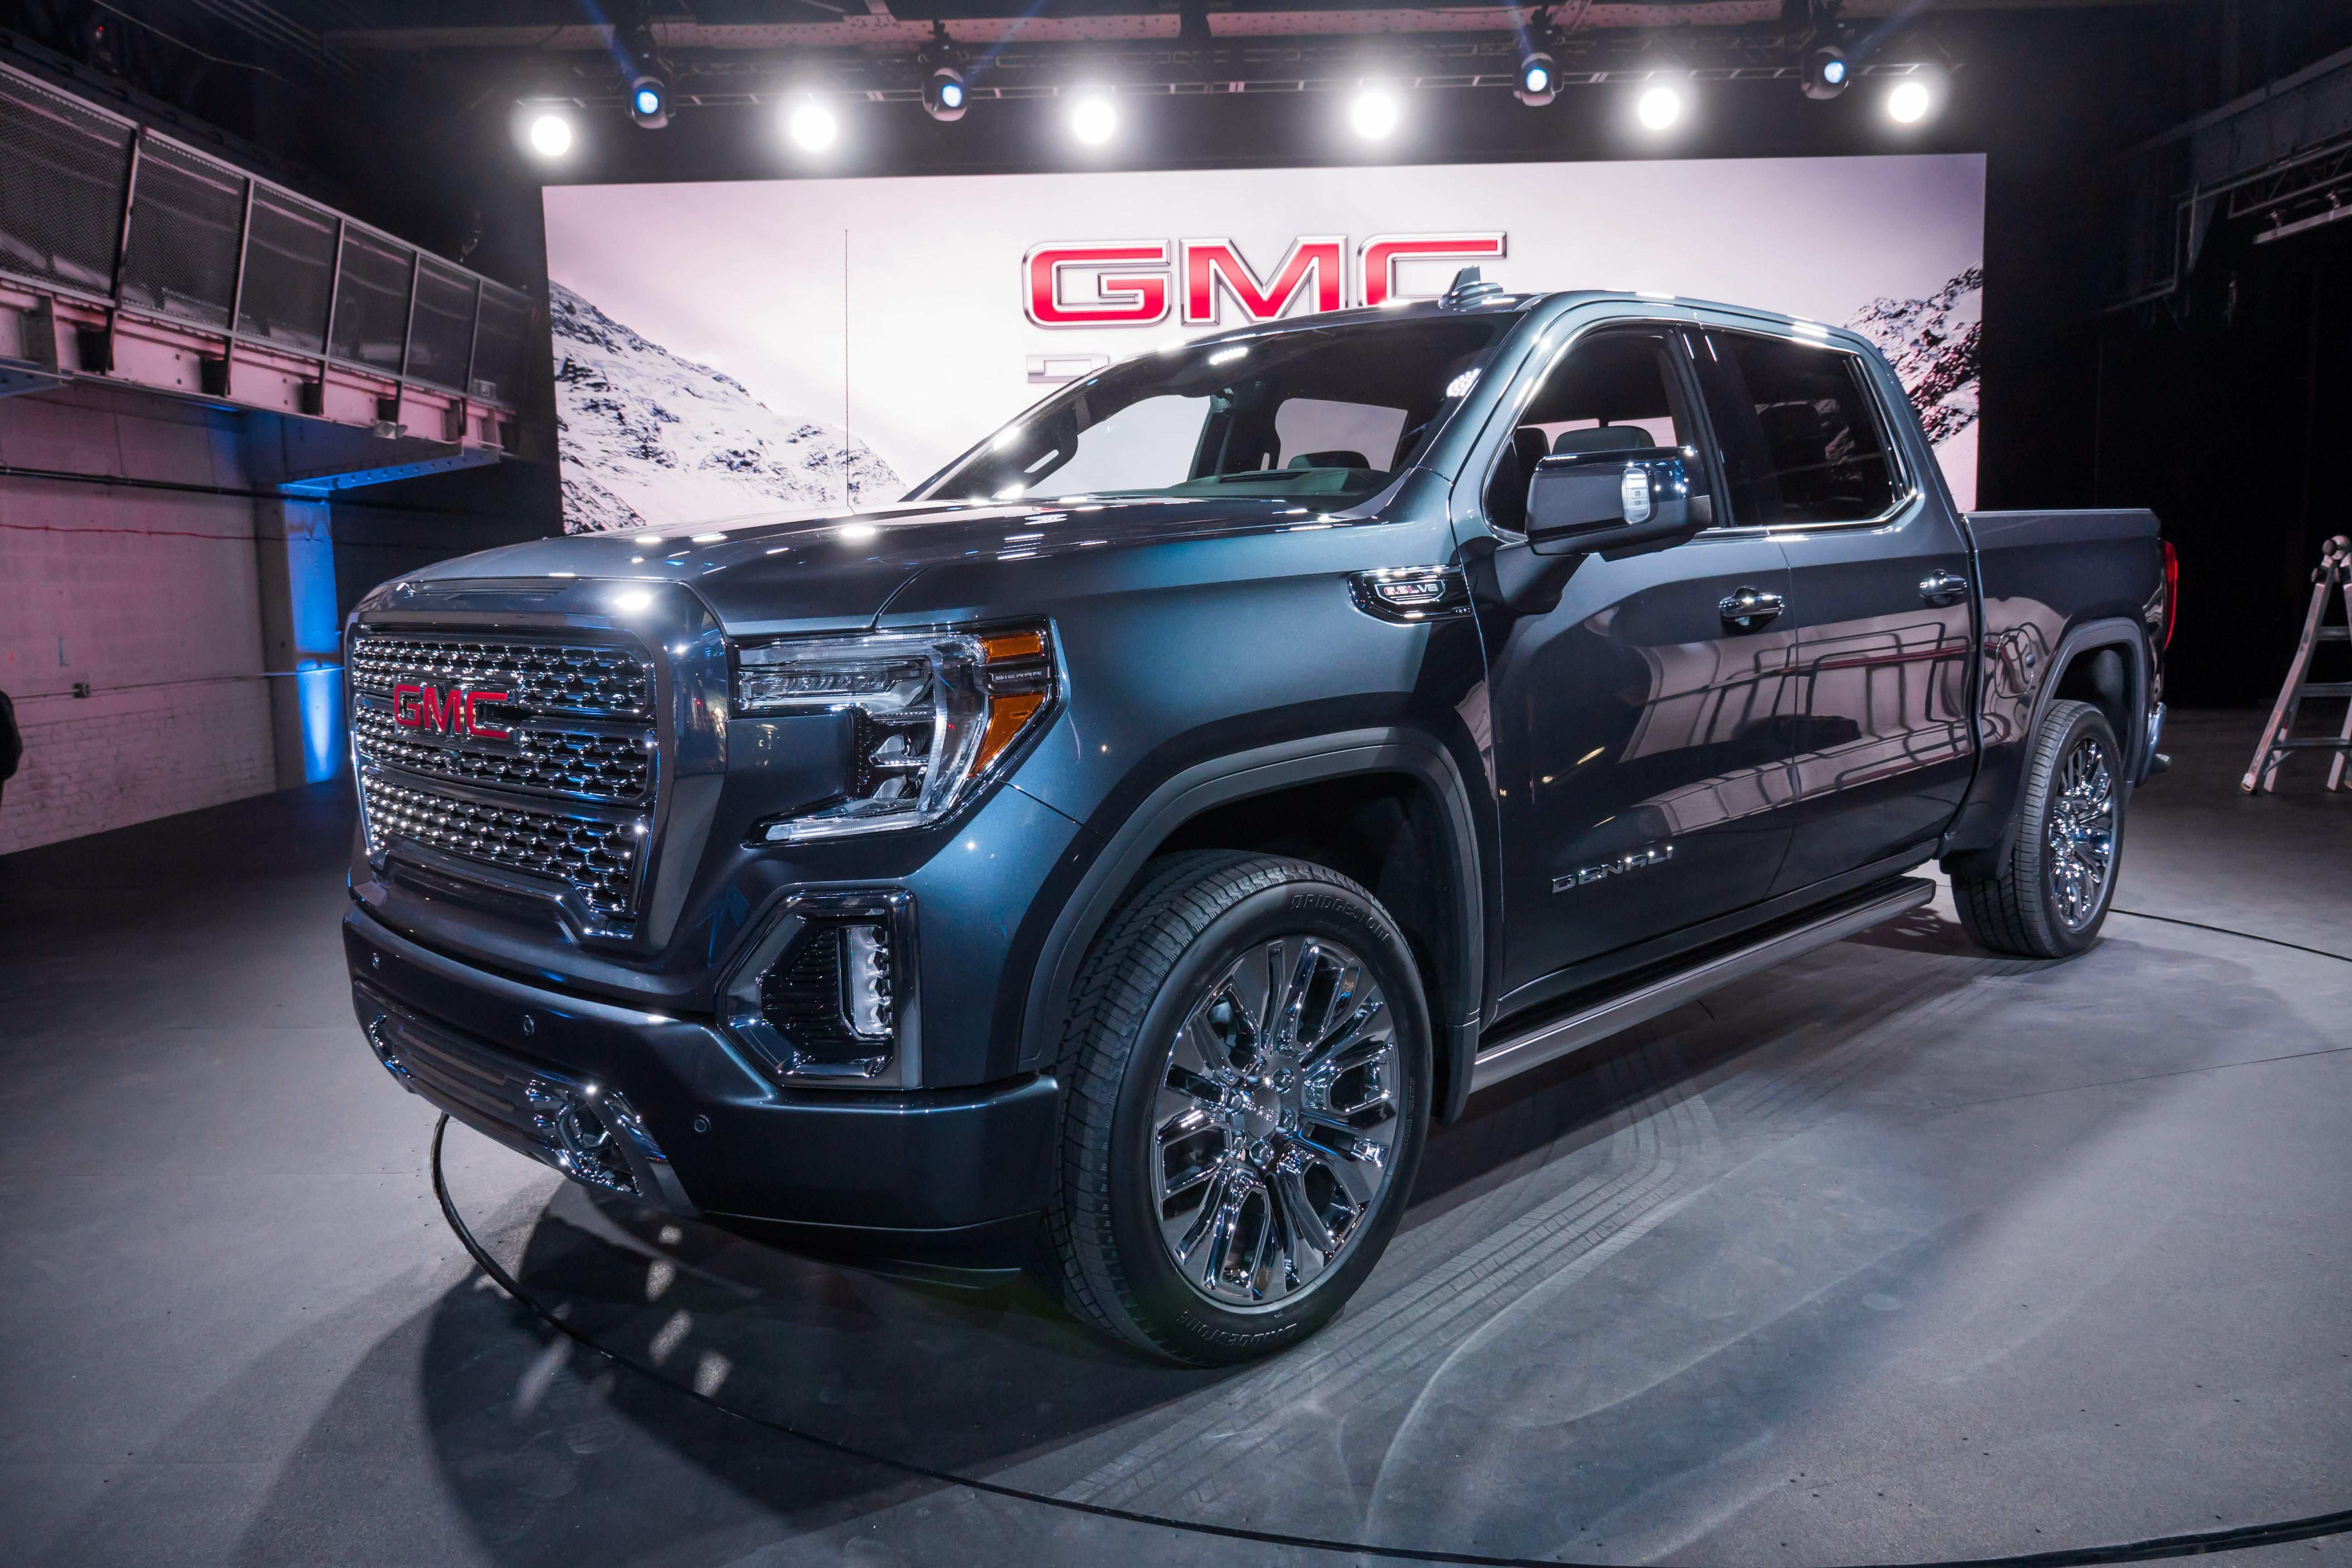 95 Best Review New 2019 Gmc Yukon Denali Colors Spesification Specs by New 2019 Gmc Yukon Denali Colors Spesification